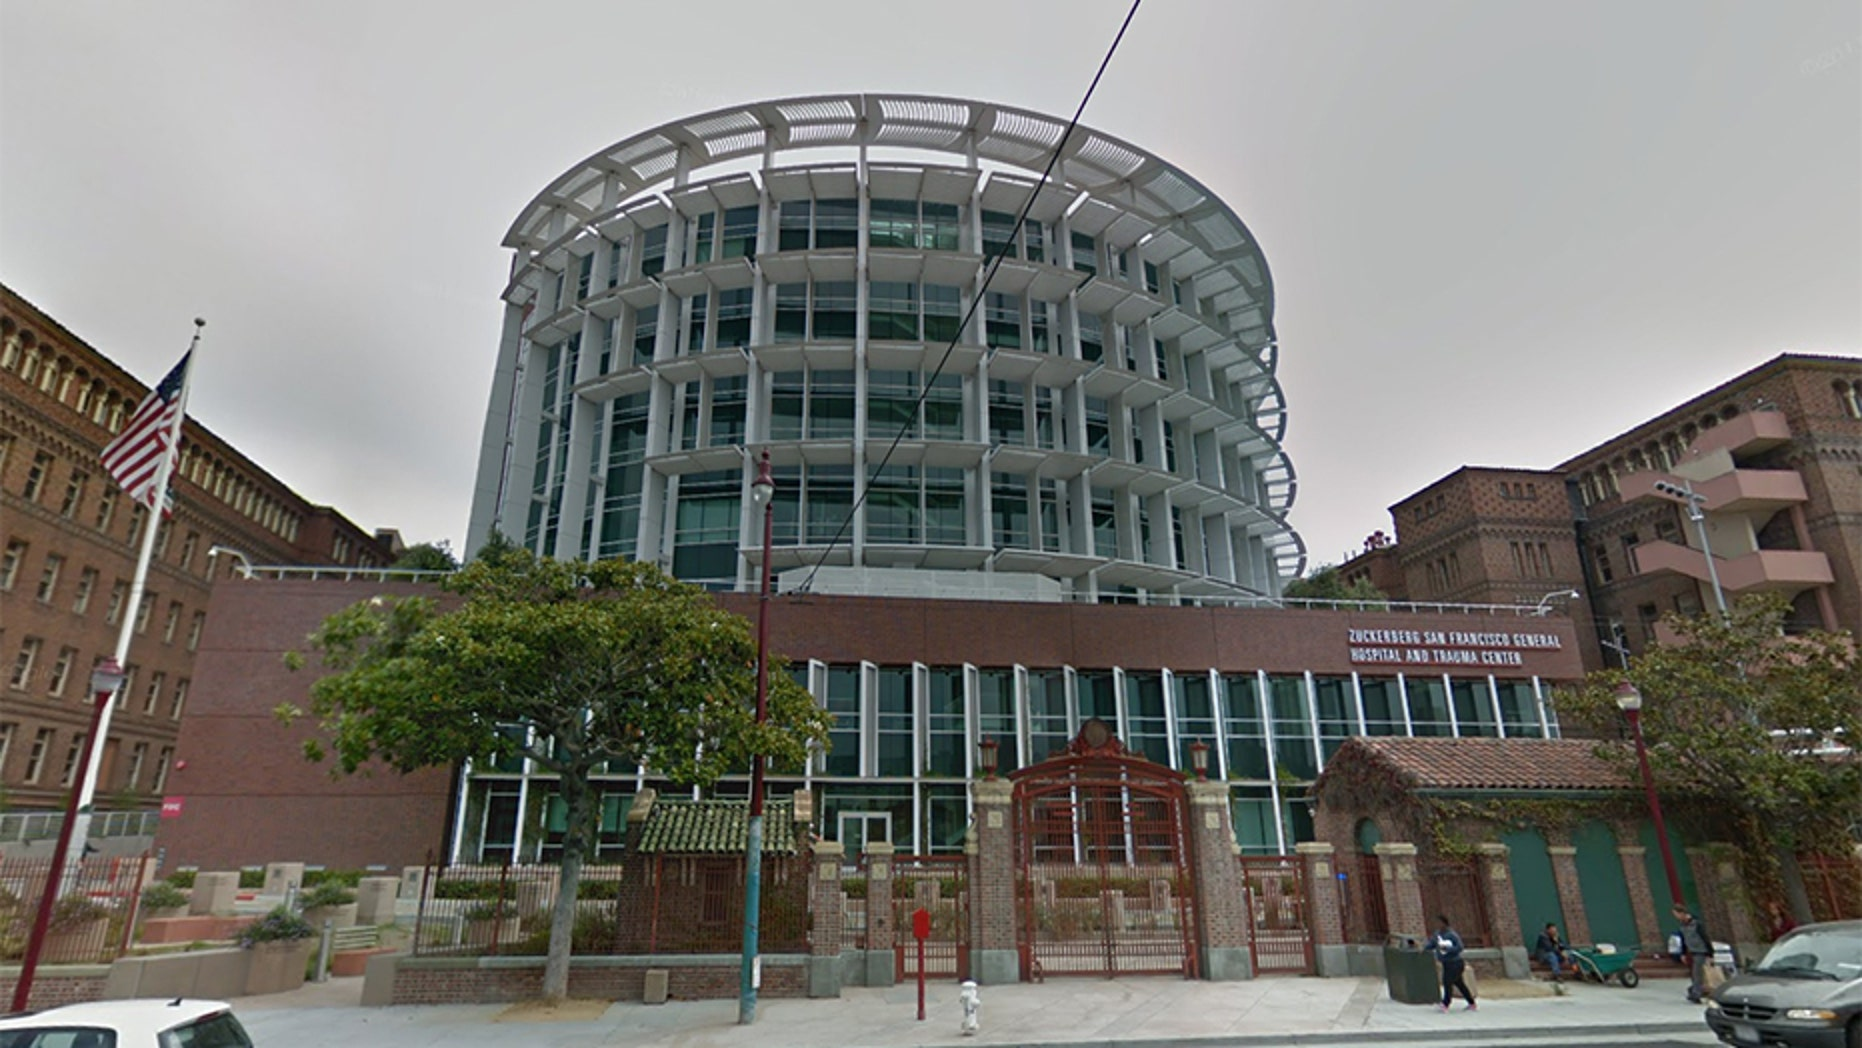 A woman's body was found Wednesday in a building stairwell on the grounds of San Francisco General Hospital, authorities said.